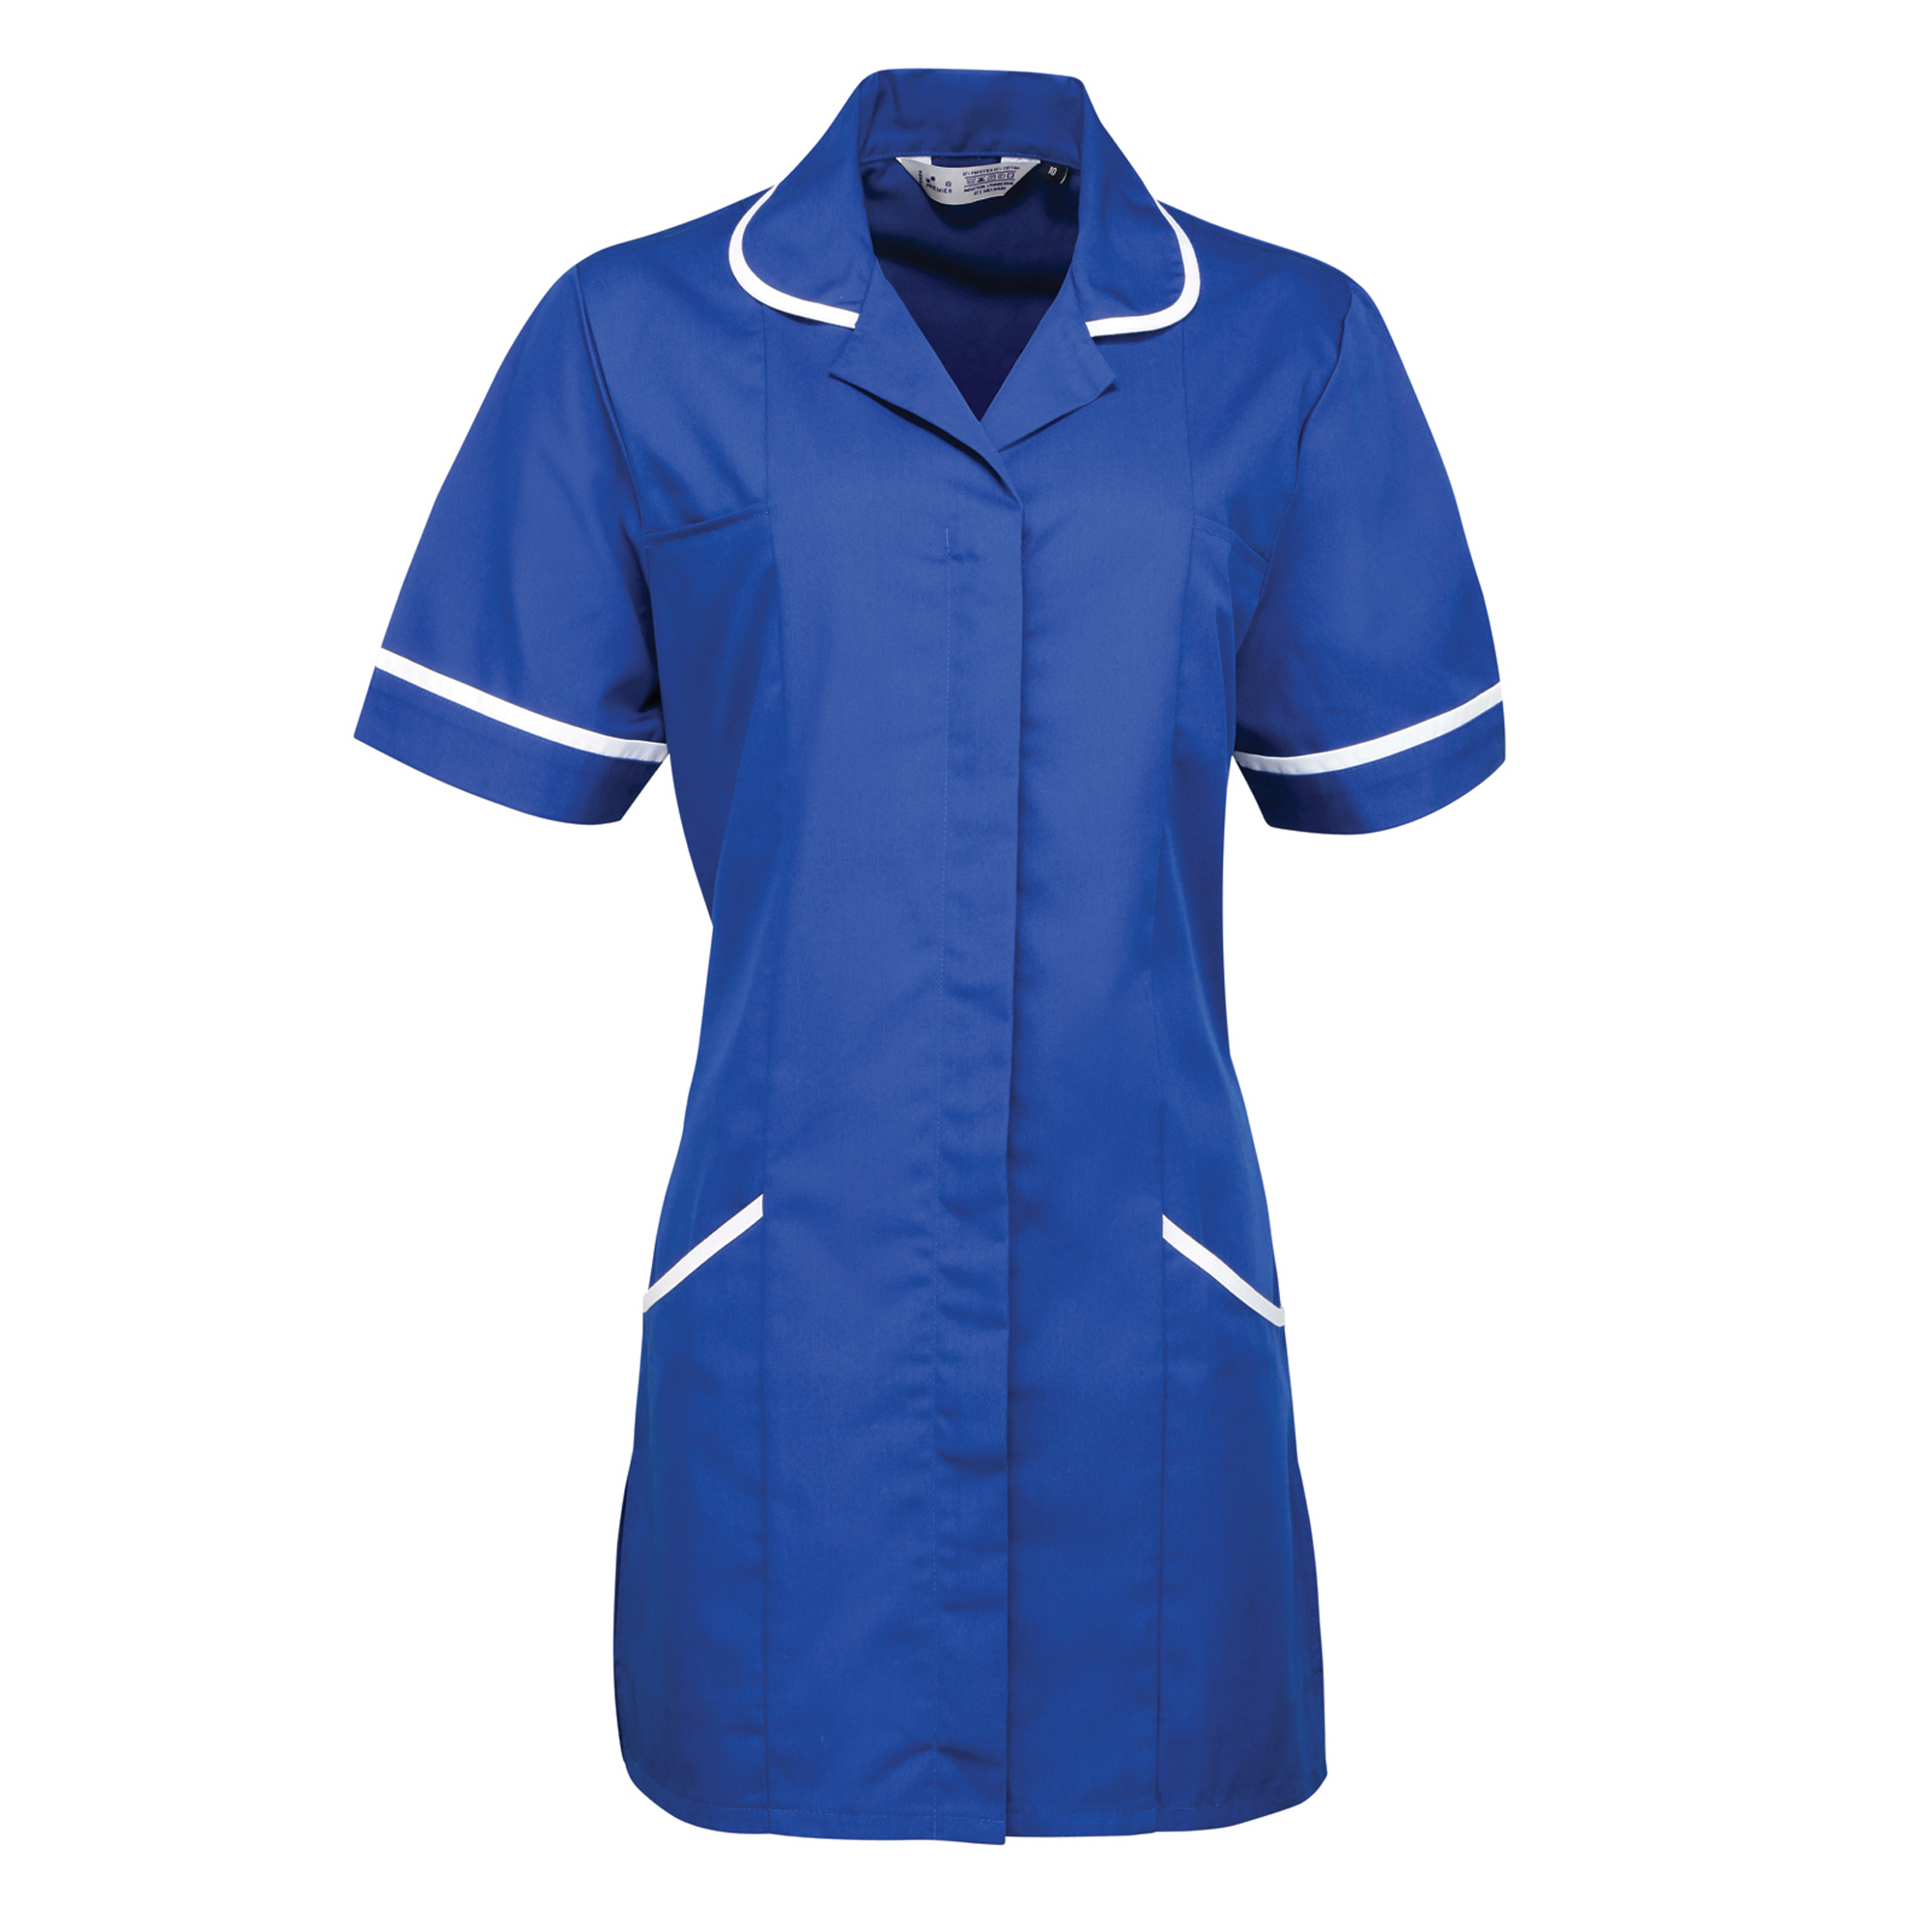 Premier Ladies/Womens Vitality Medical/Healthcare Work Tunic (Pack of 2) (8) (Royal/ White)